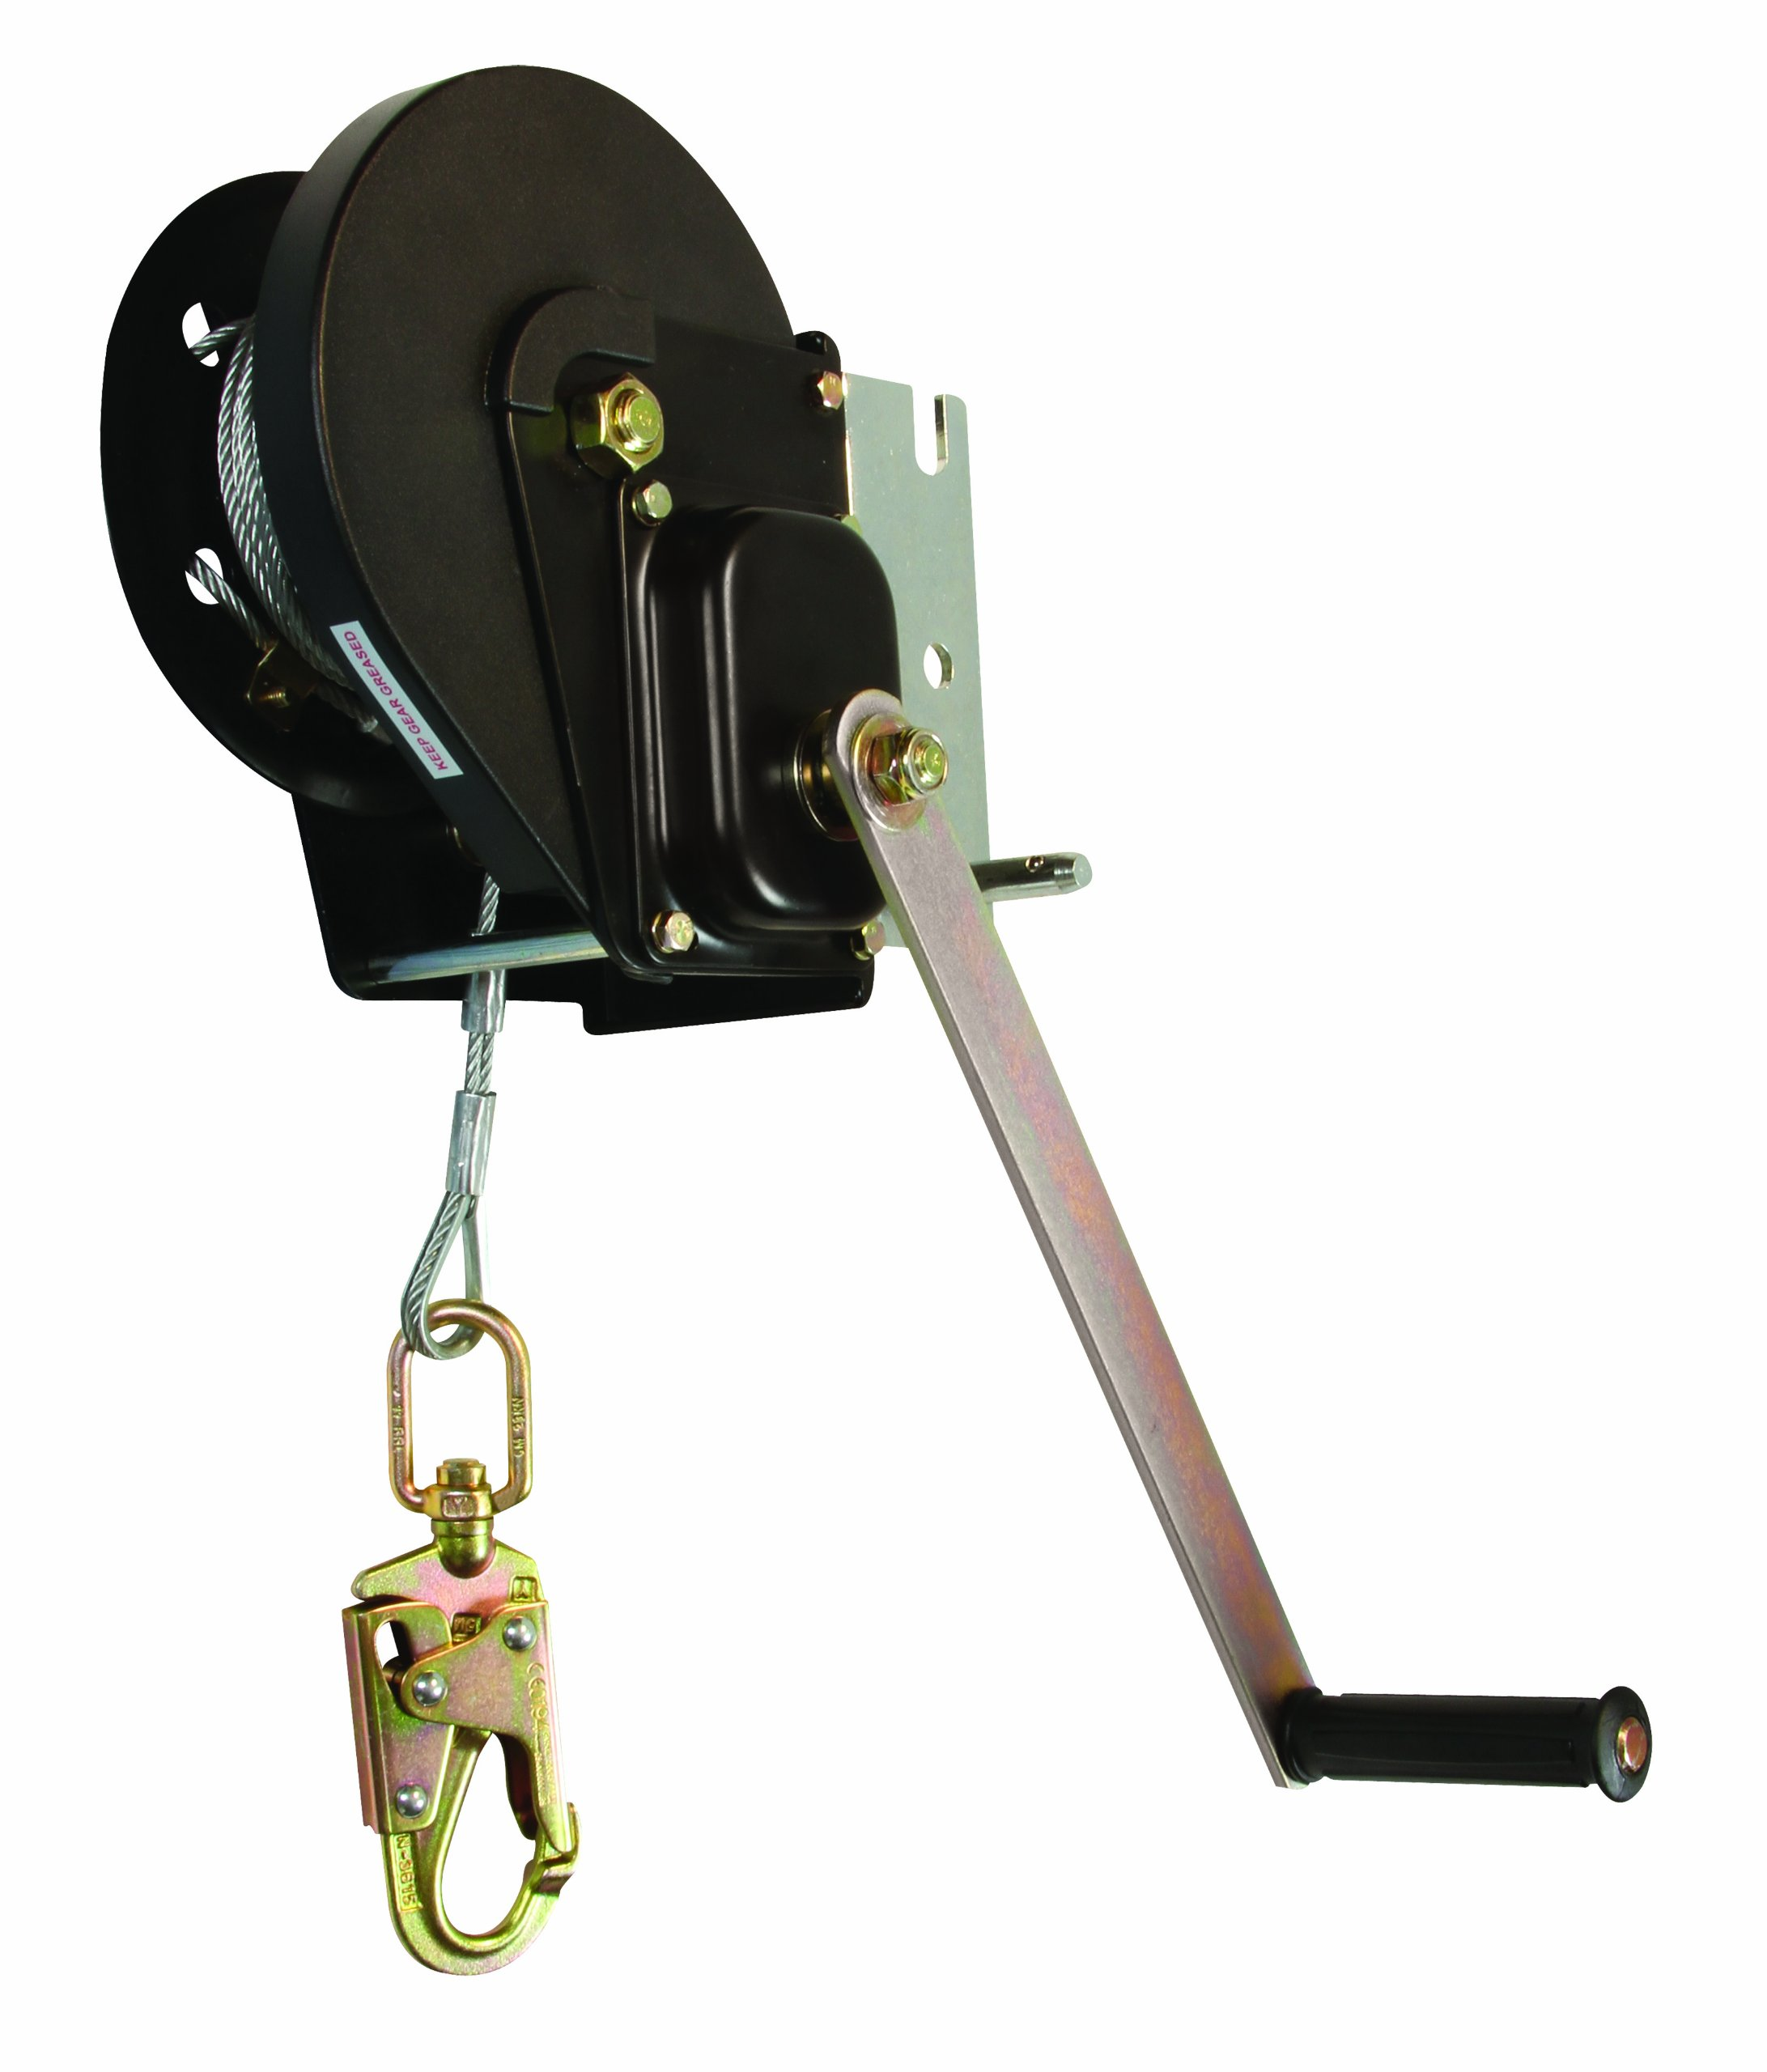 FallTech 7293 Confined Space Winch - Personnel Winch with Galvanized Cable and Storage Bag, 60', Black